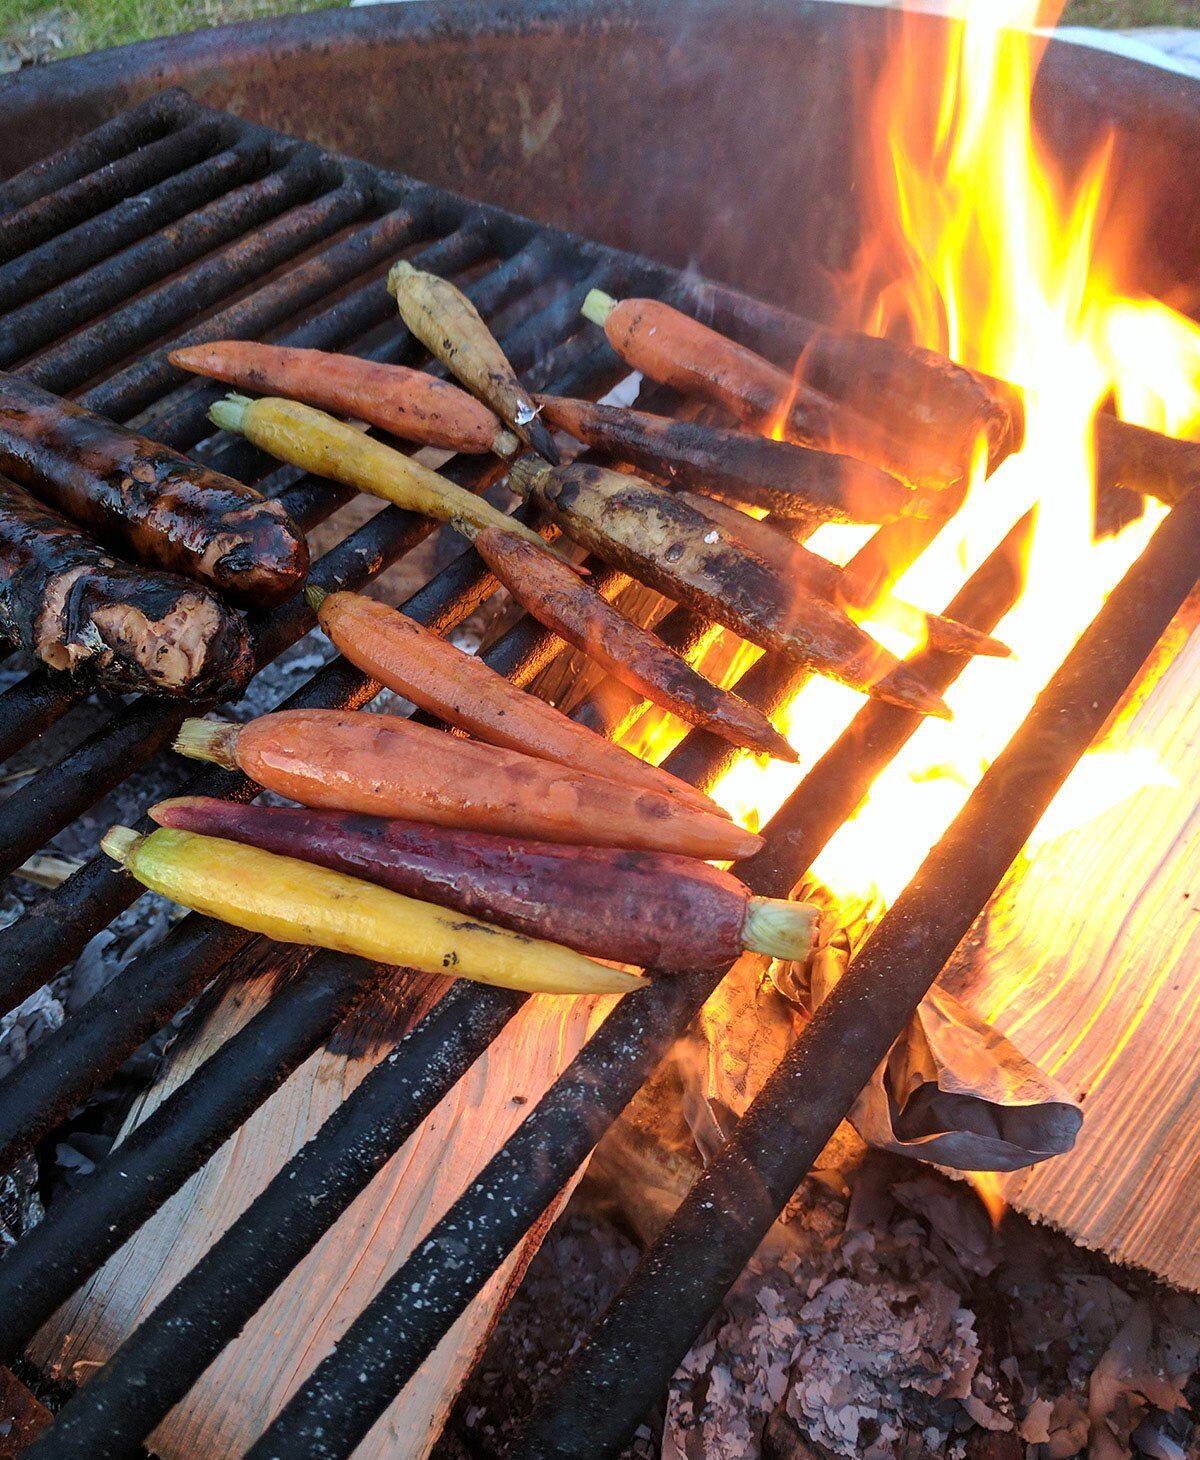 Carrots and sausages cooking over an open fire.